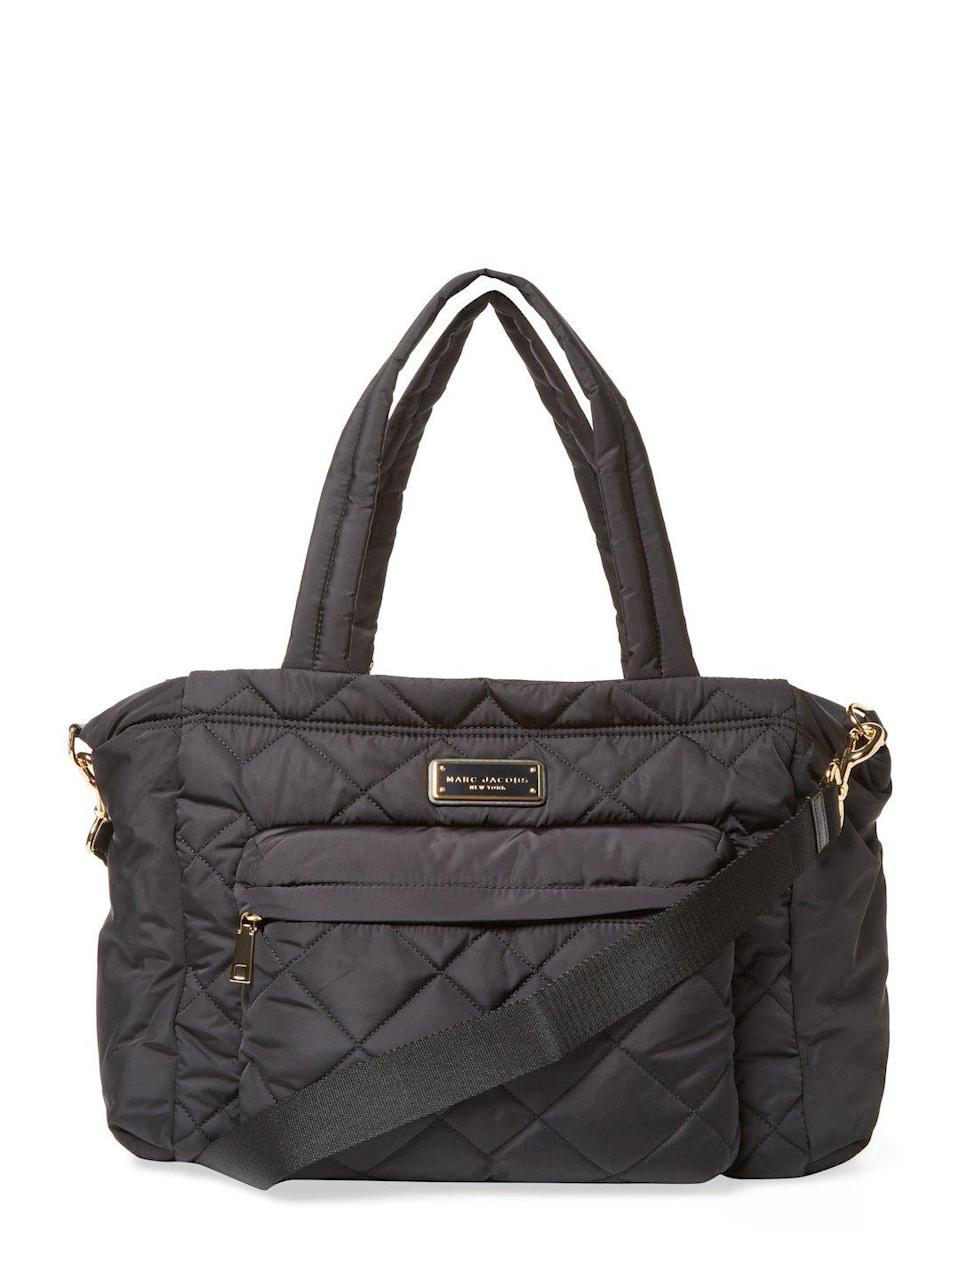 Chic and discreet. No one will guess this stylish bag is filled with diapers.